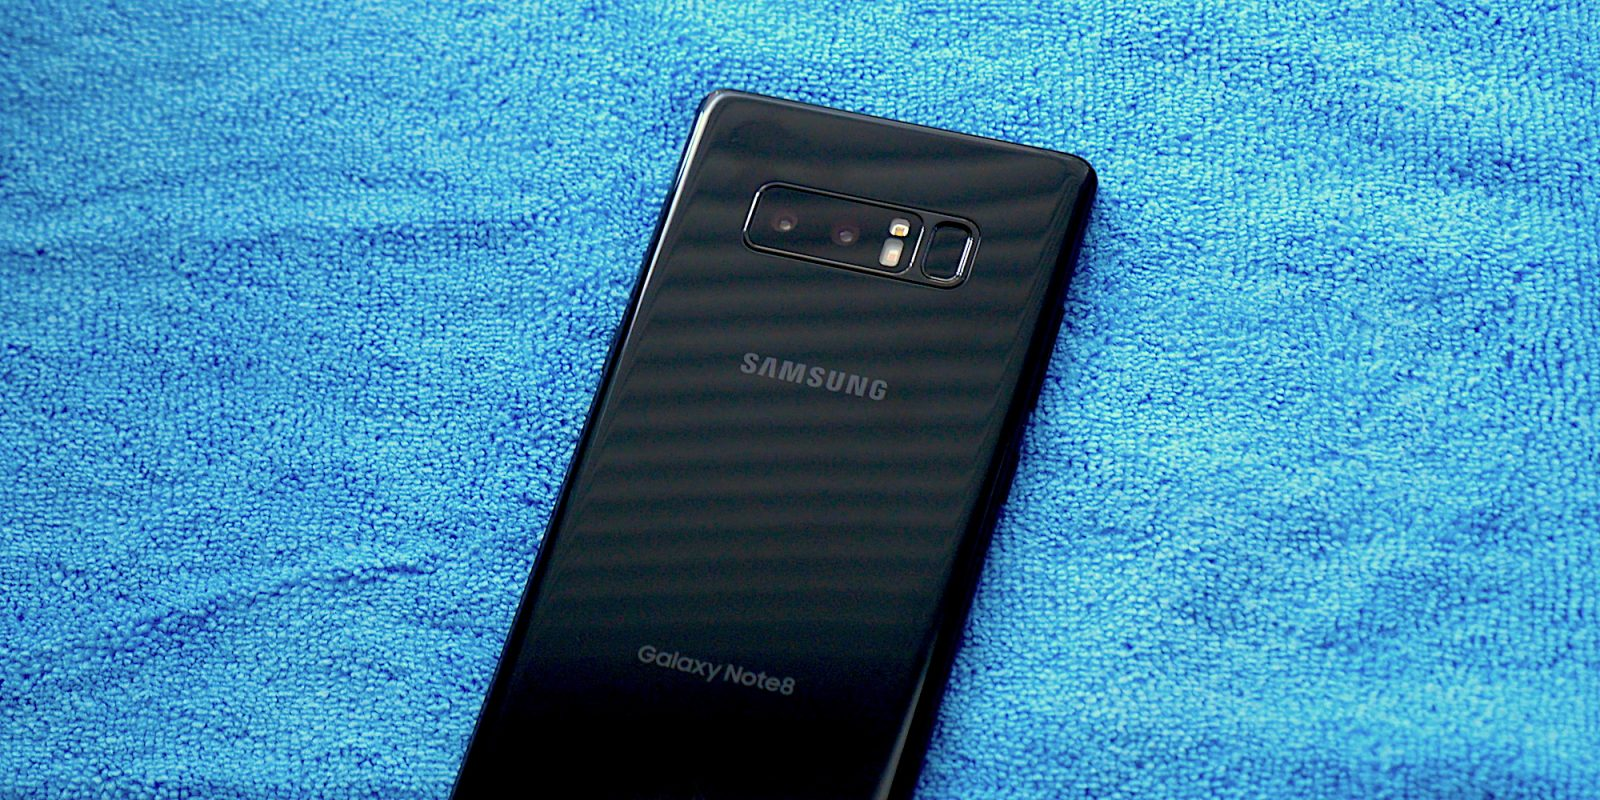 Samsung Galaxy Note 8 gets a fourth Android Pie beta update